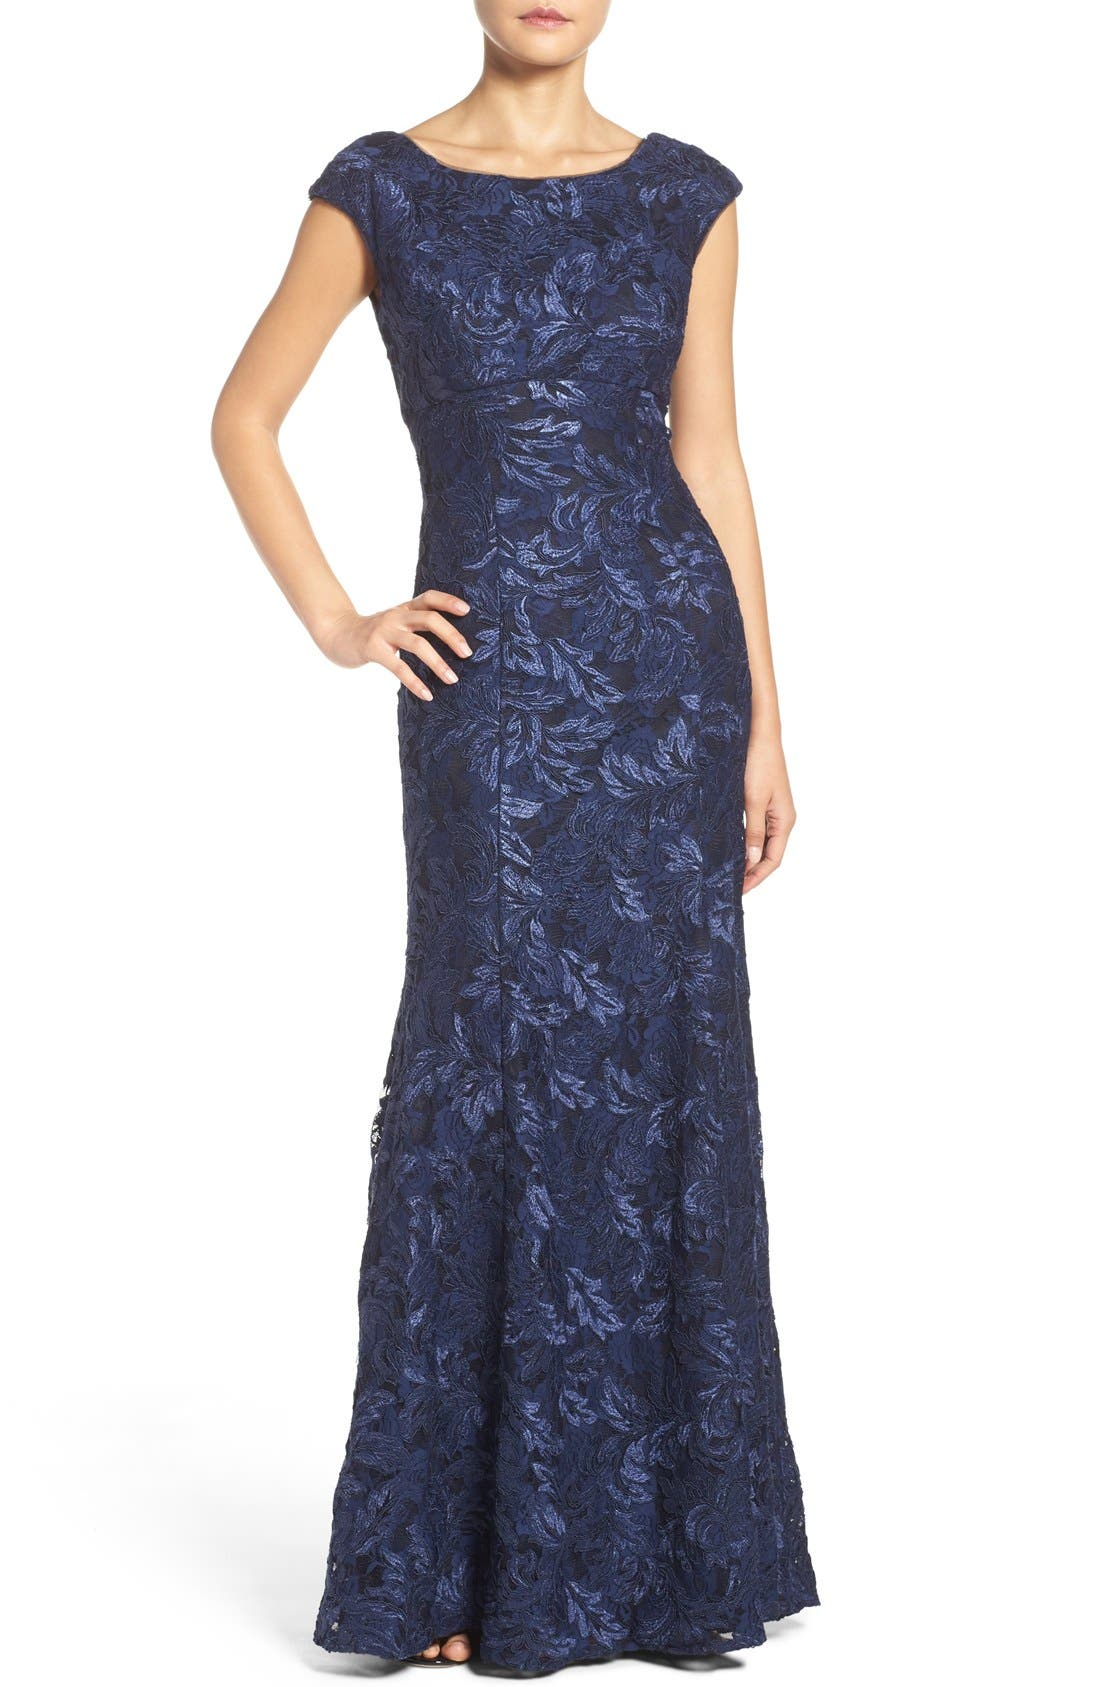 Alternate Image 1 Selected - Xscape Embroidered Lace Mermaid Gown (Regular & Petite)